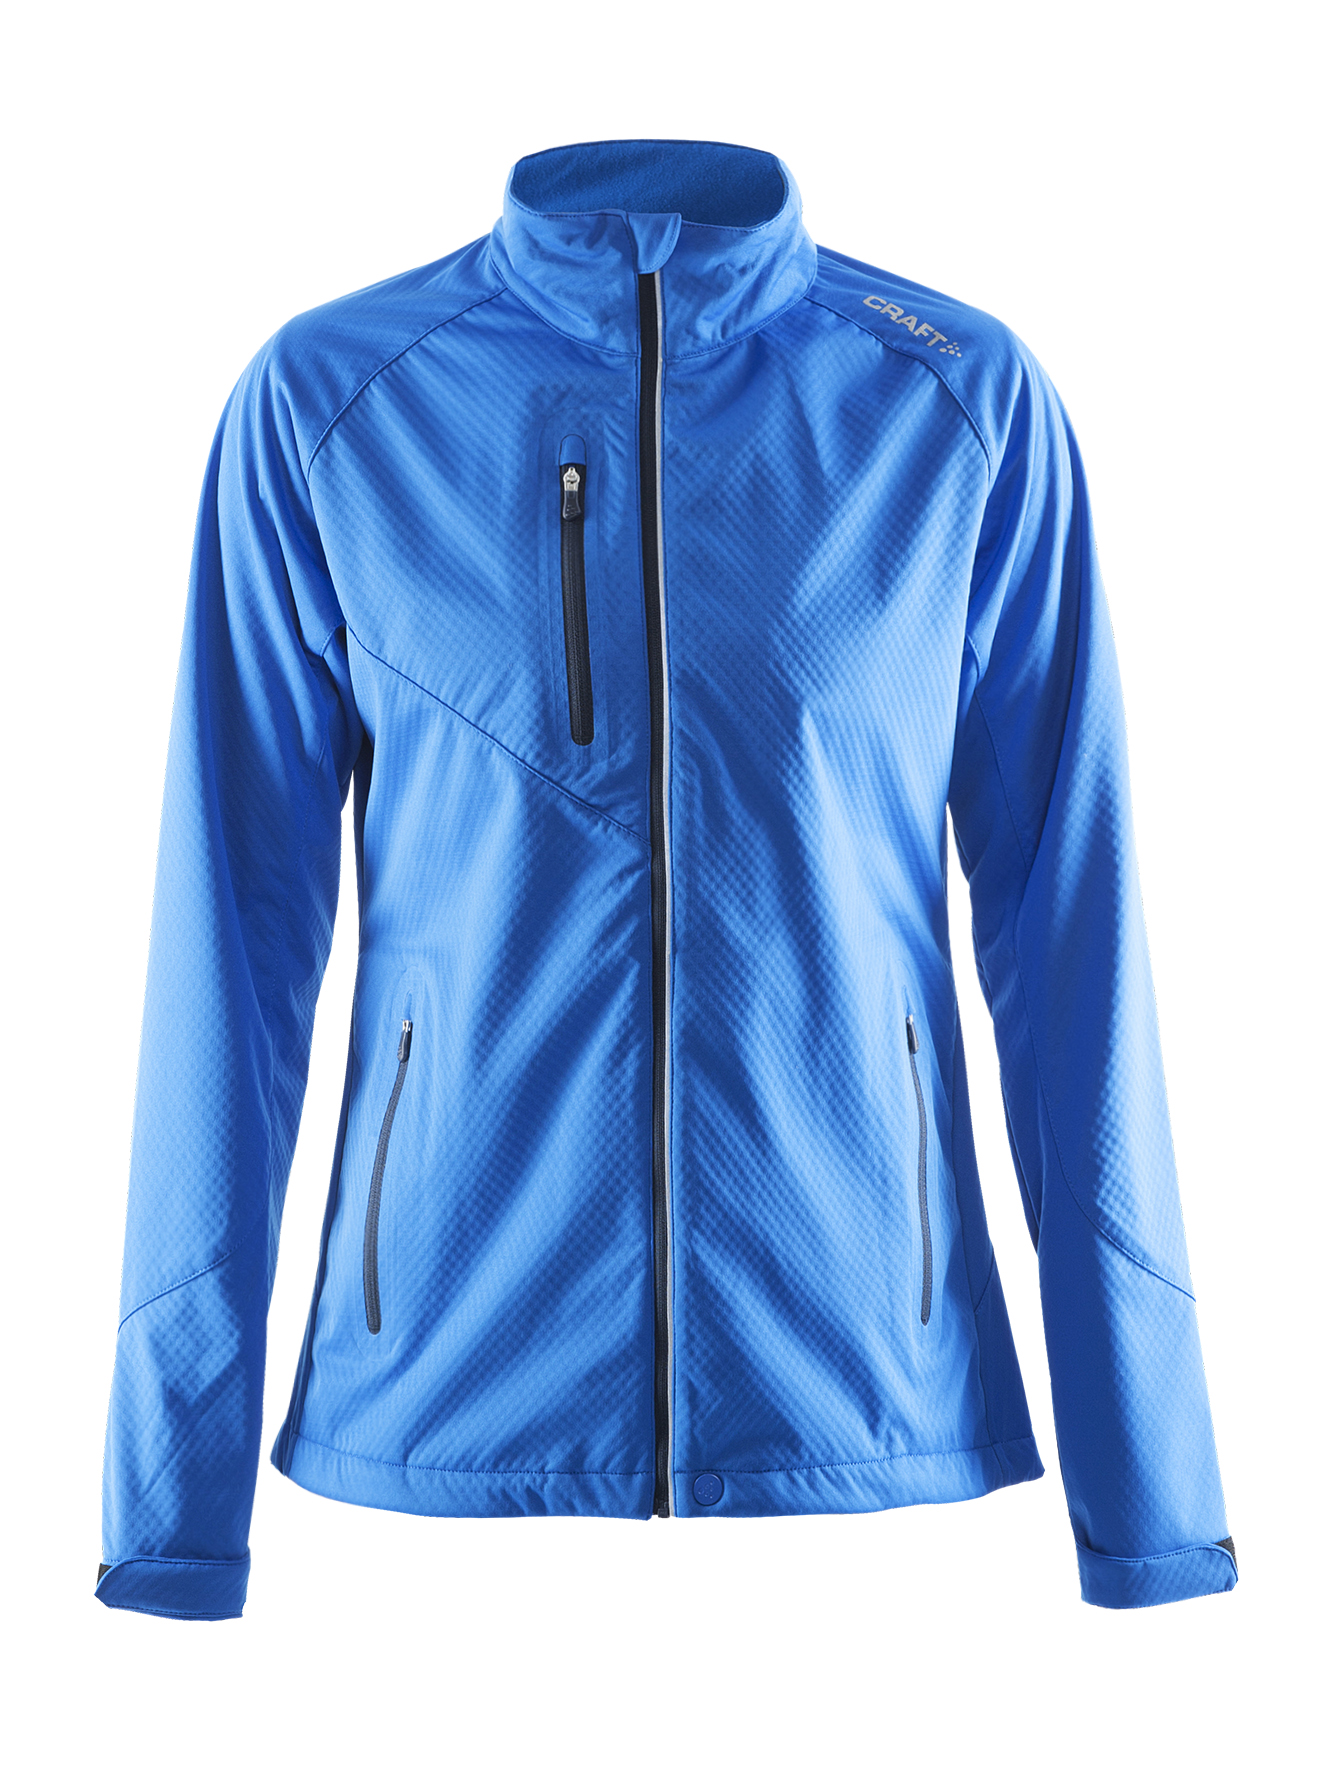 Craft Bormio Soft Shell Jacket W Sweden Blue